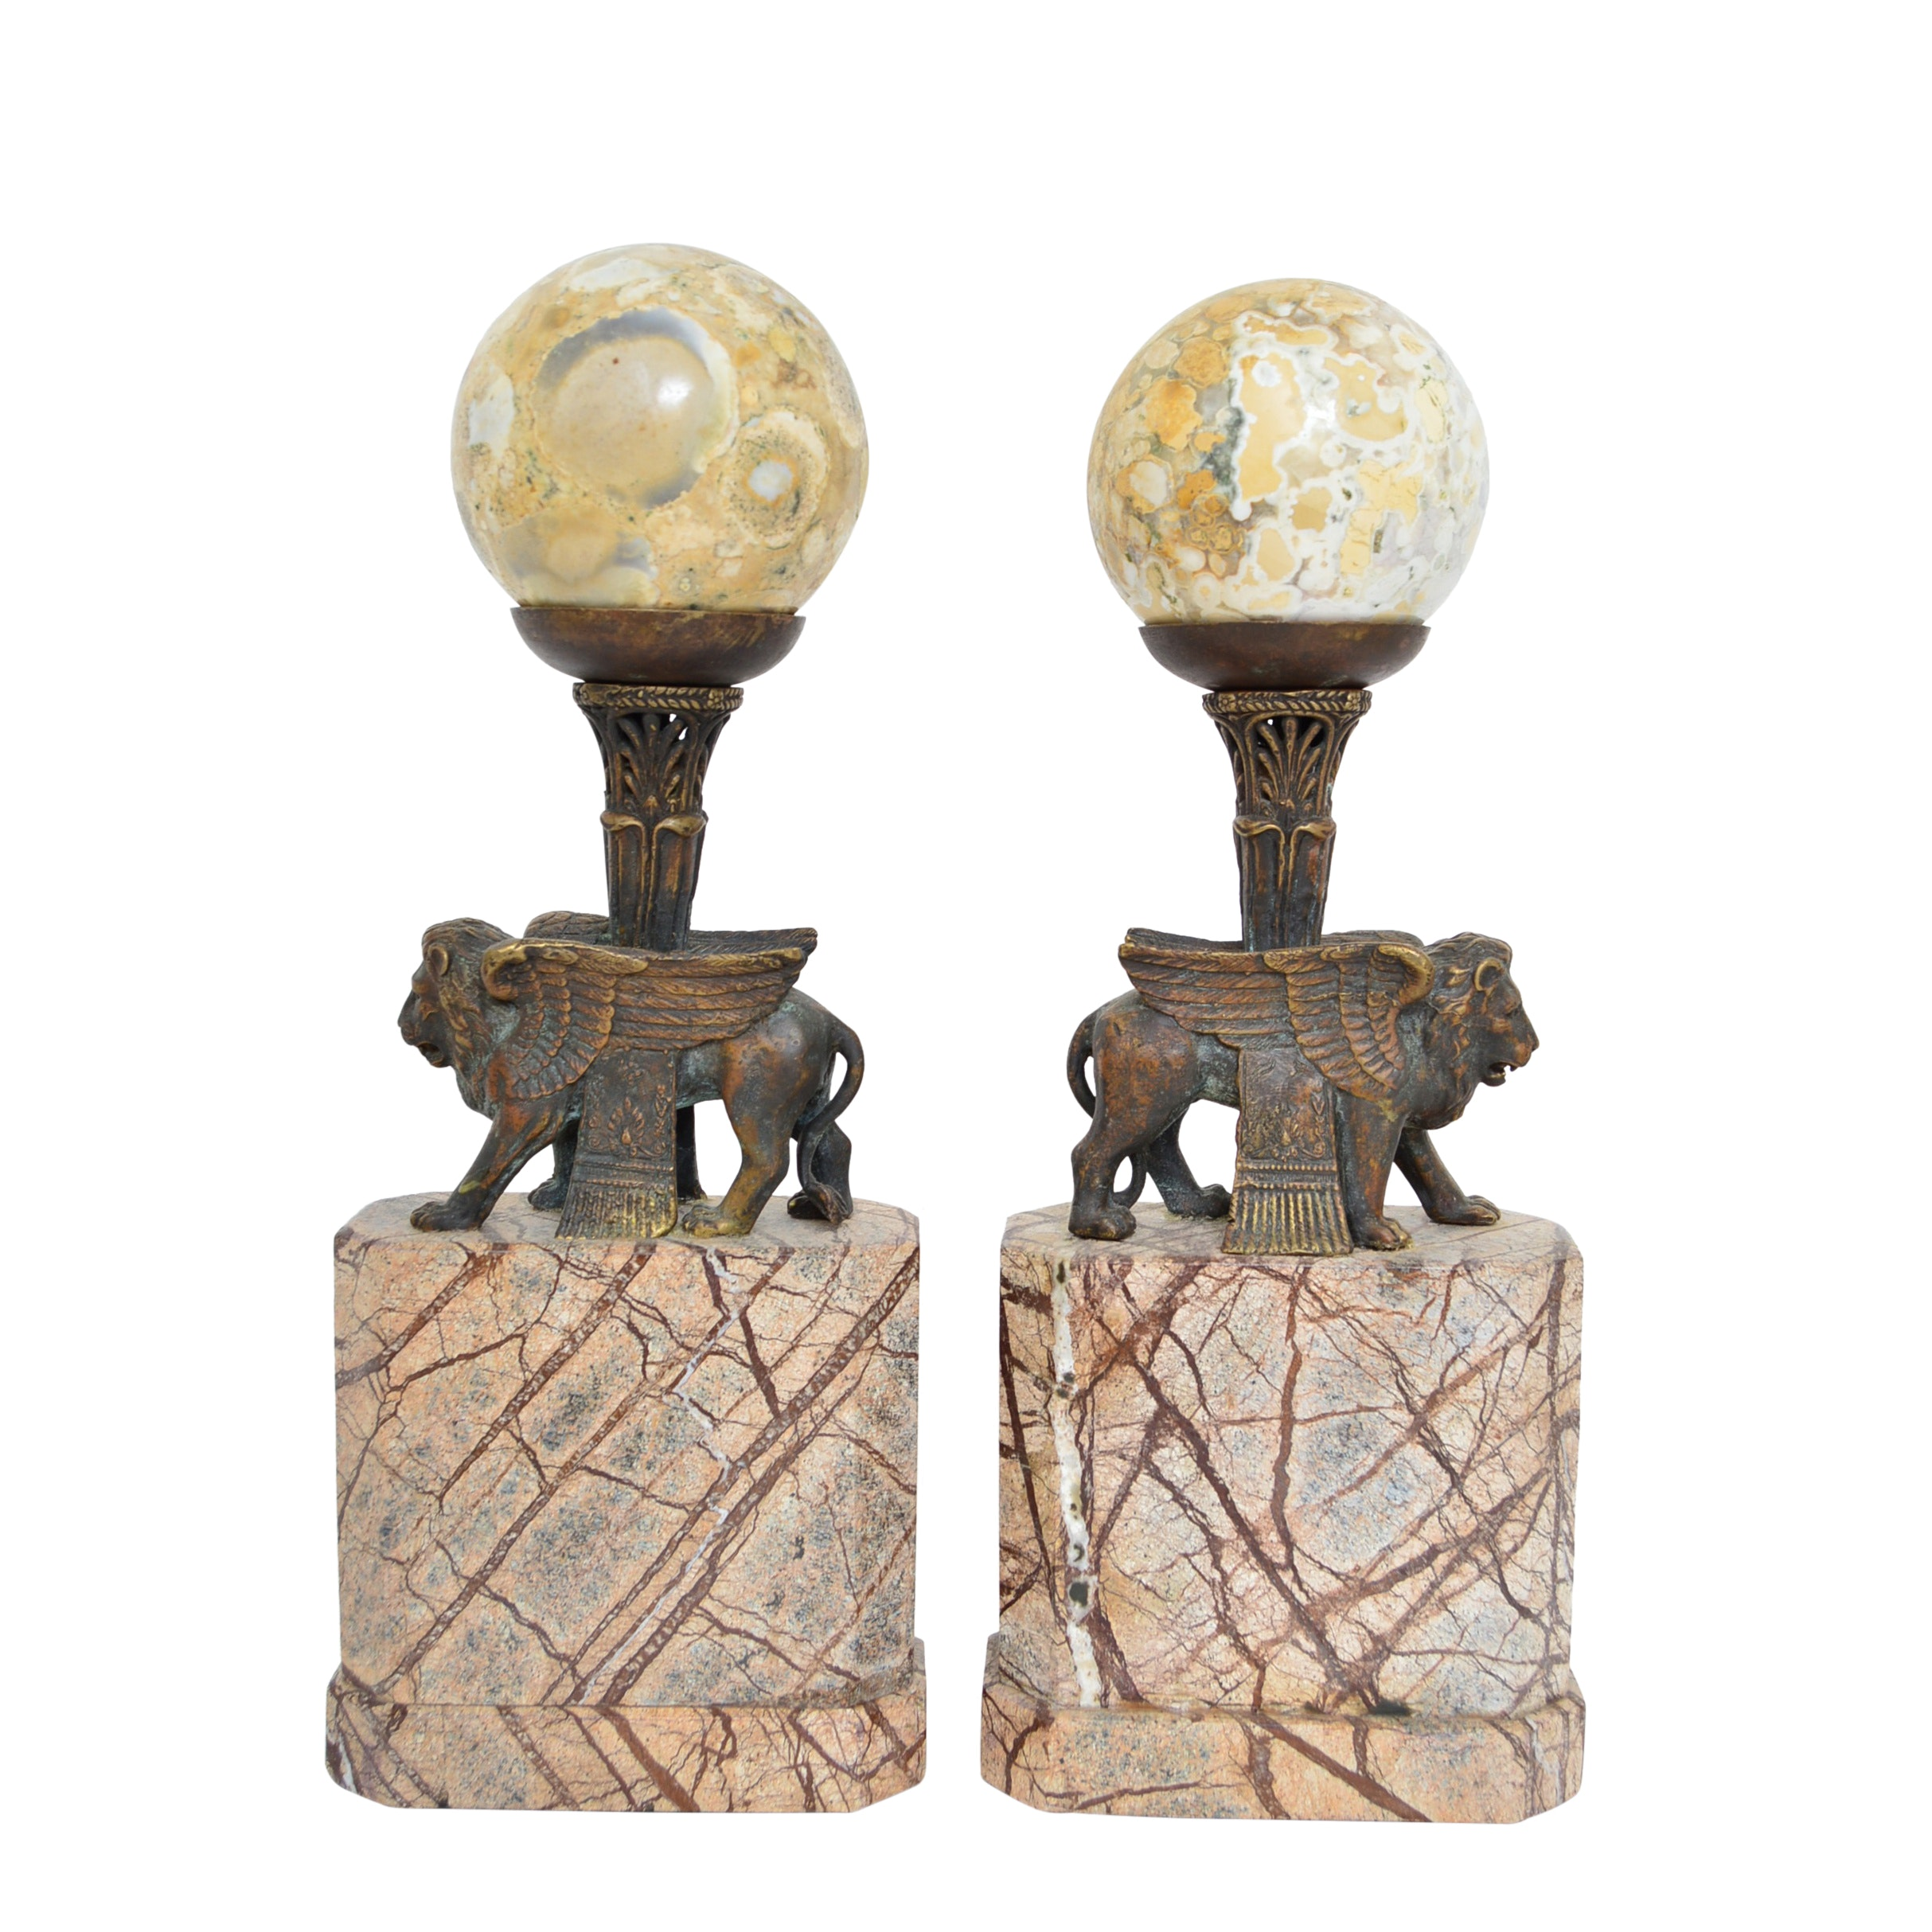 Neoclassic Style Bookends with Brass Winged Lions and Marble Orbs